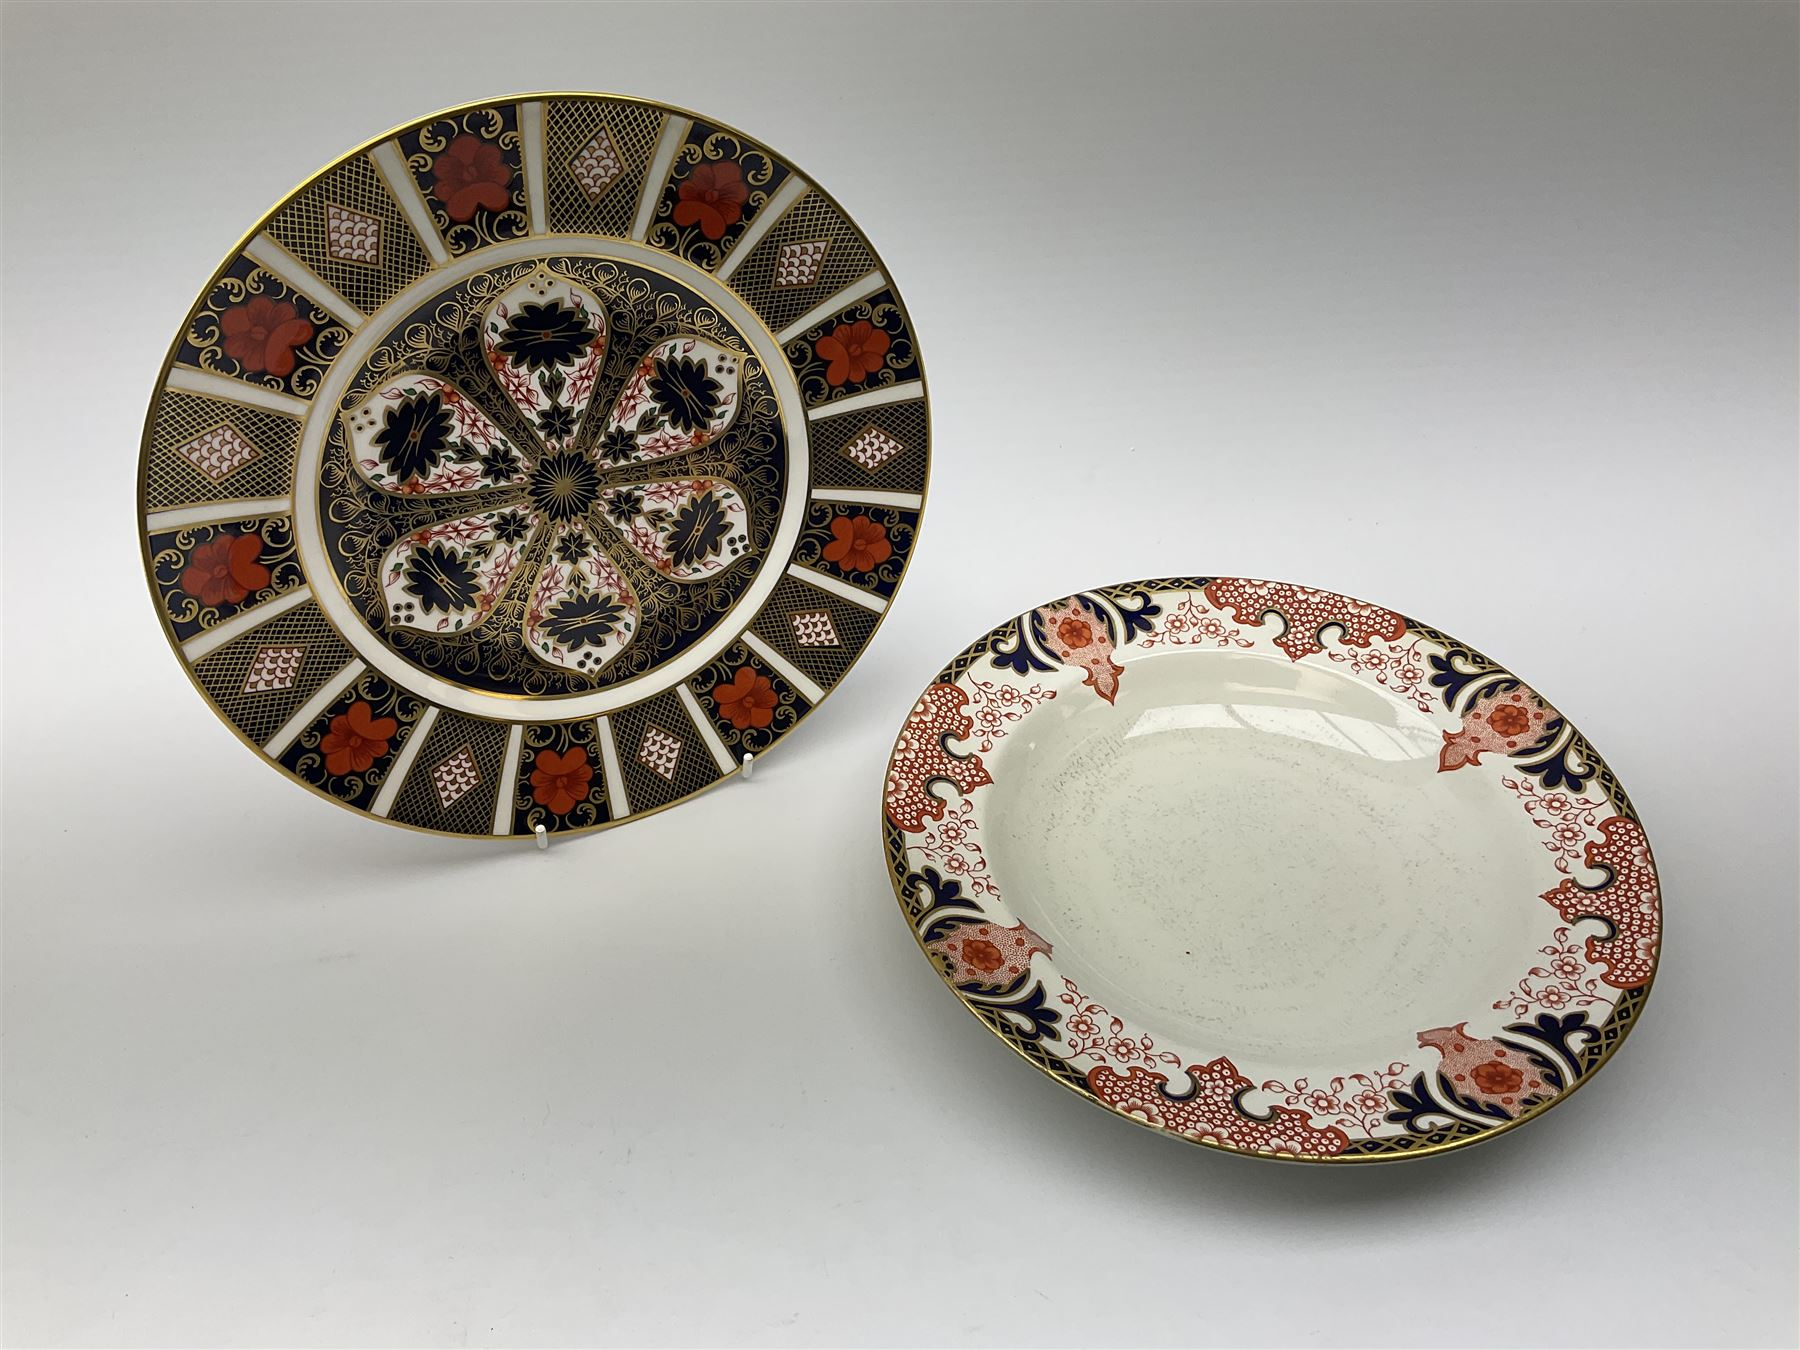 A Royal Crown Derby Imari 1128 pattern plate - Image 4 of 7